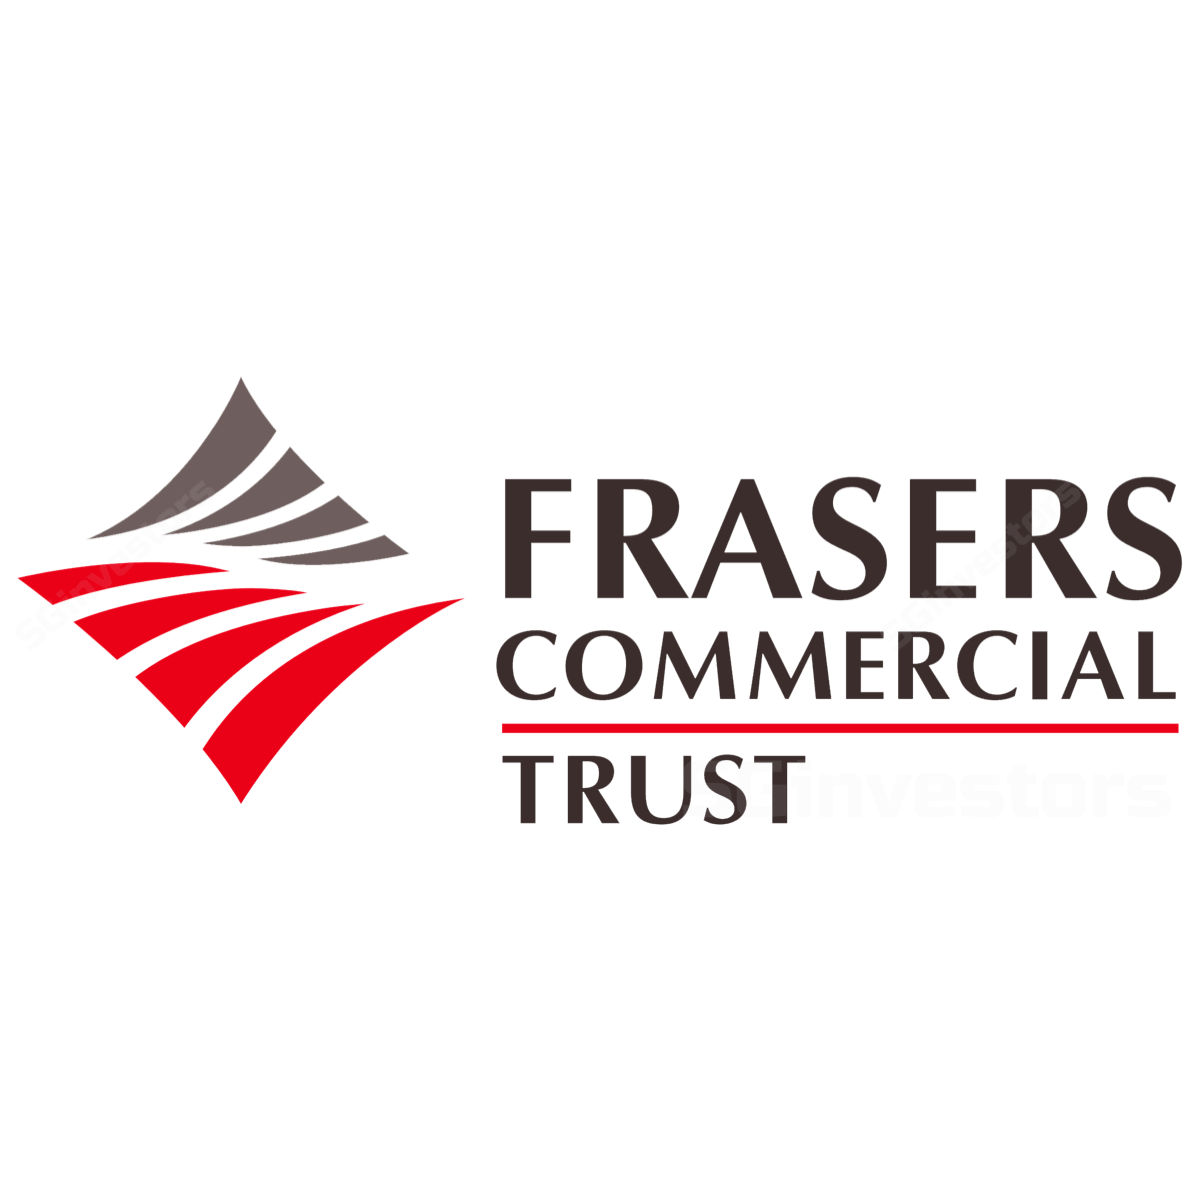 Frasers Commercial Trust - RHB Invest 2017-10-23: In Transition